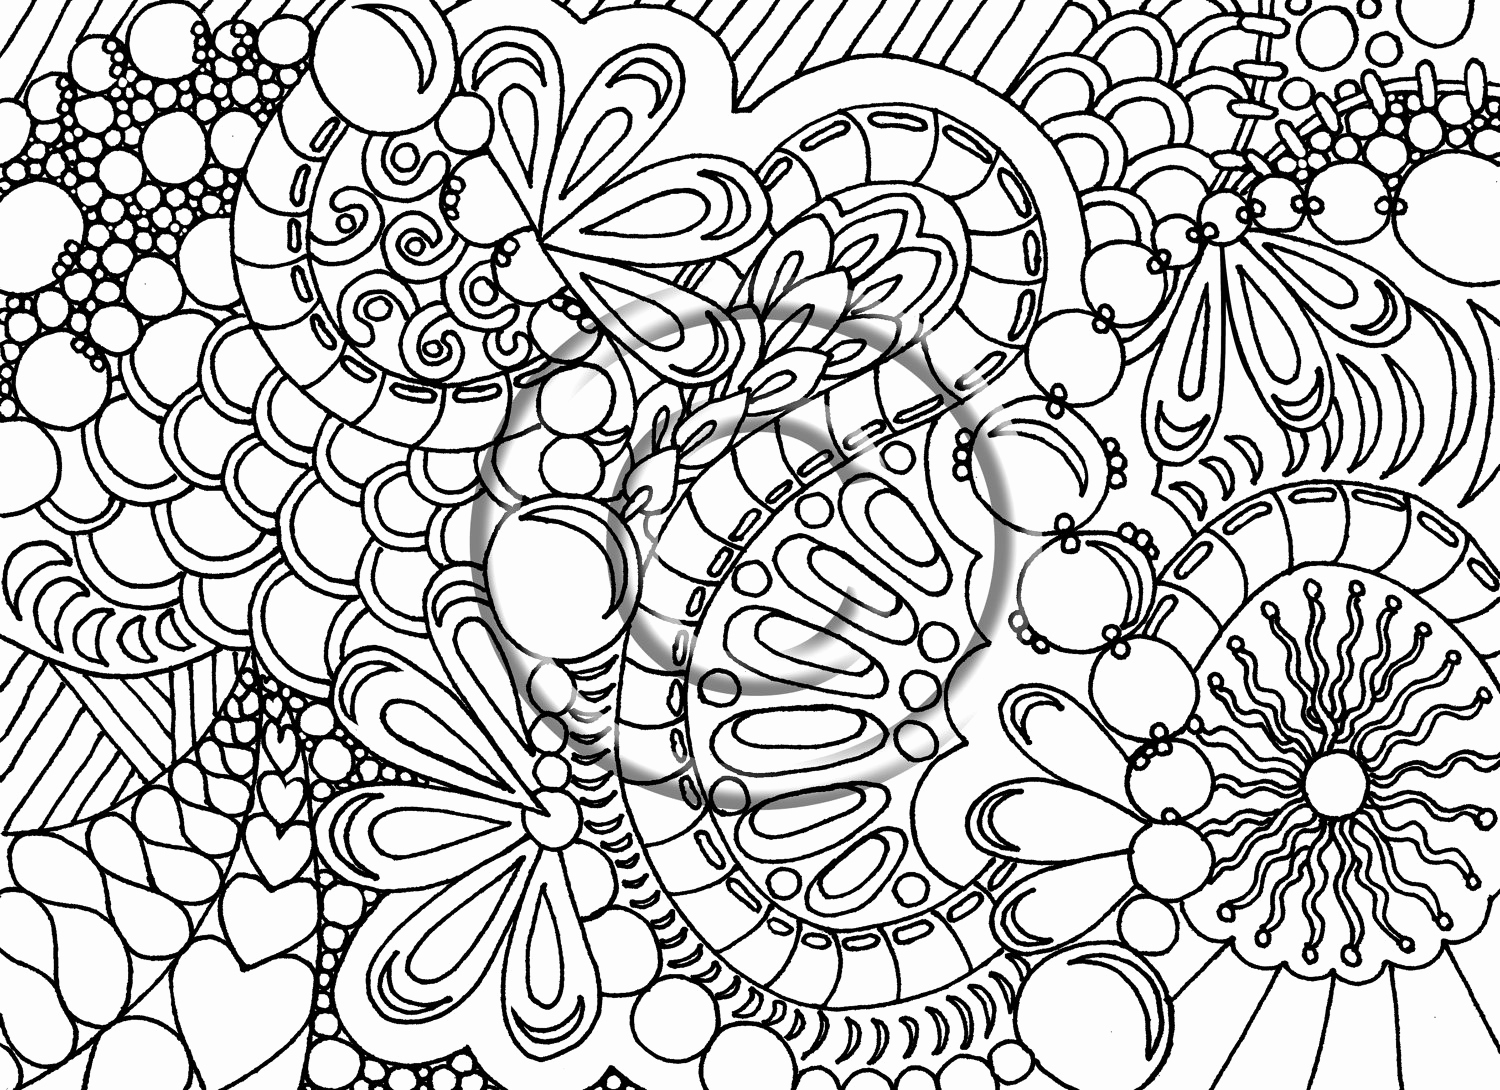 Hard Coloring Pages Abstract Coloring Pages Line Collection Of Snowflake Coloring Pages for Adults Coloring Pages Inspiring Printable